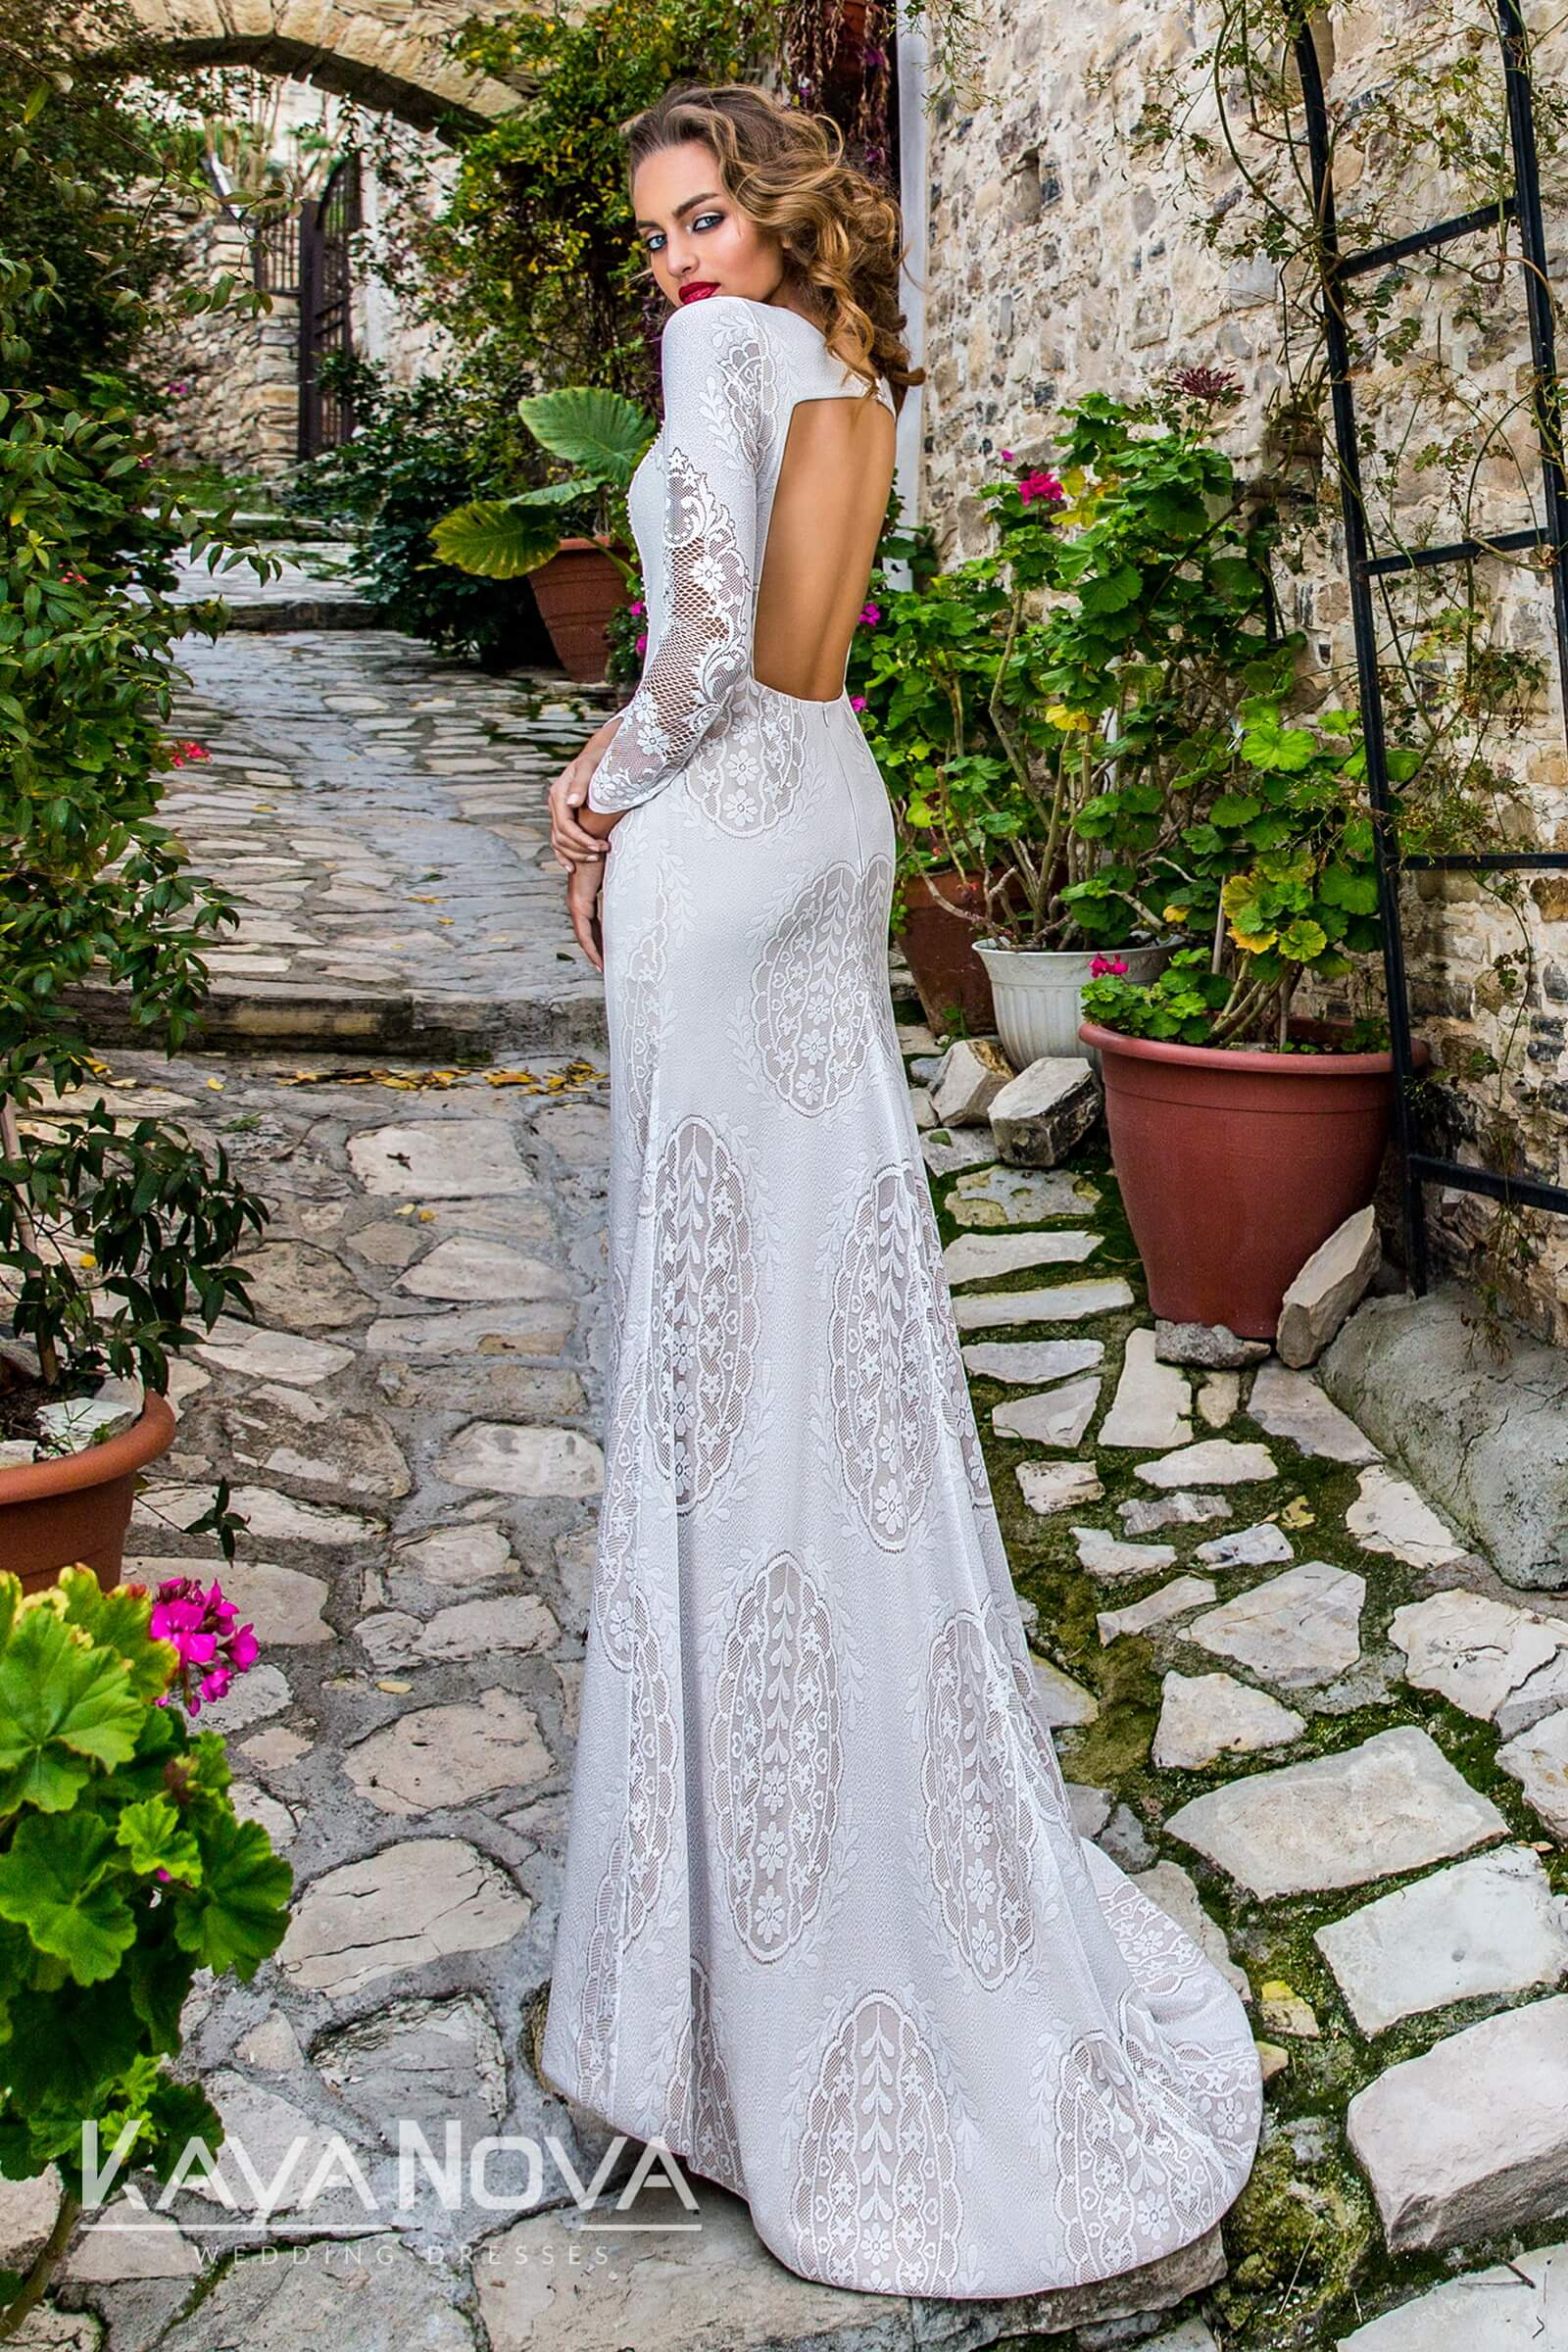 https://kayawedding.com/images/stories/virtuemart/product/Bellissima 4_12.jpg